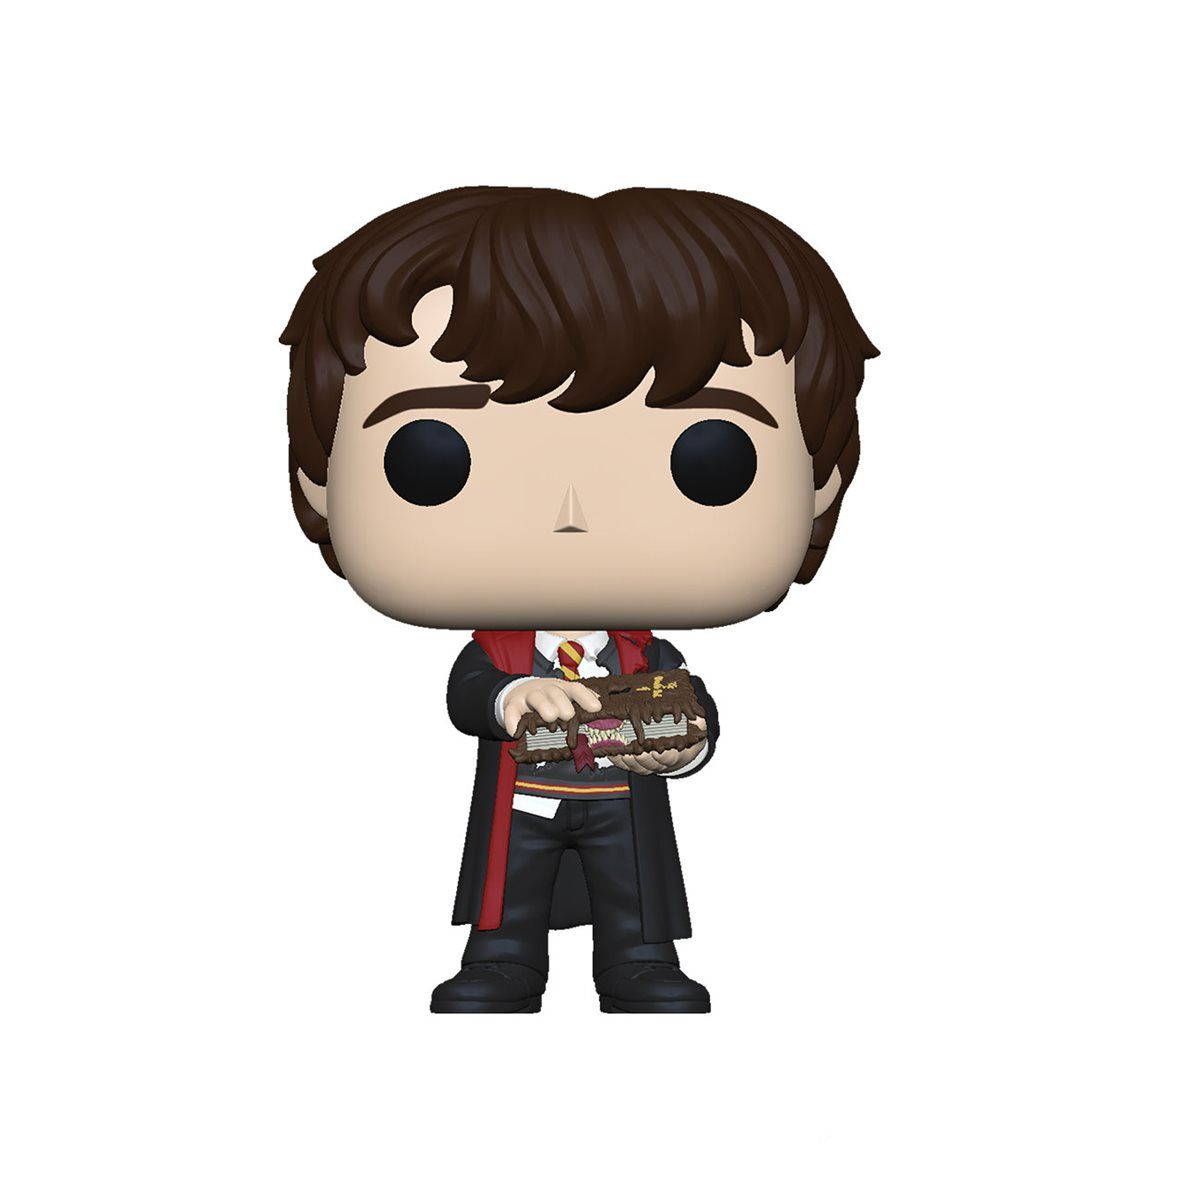 Funko Pop! Neville Com o Livro Monstruoso (Neville with Monster Book): Harry Potter #116 - Funko